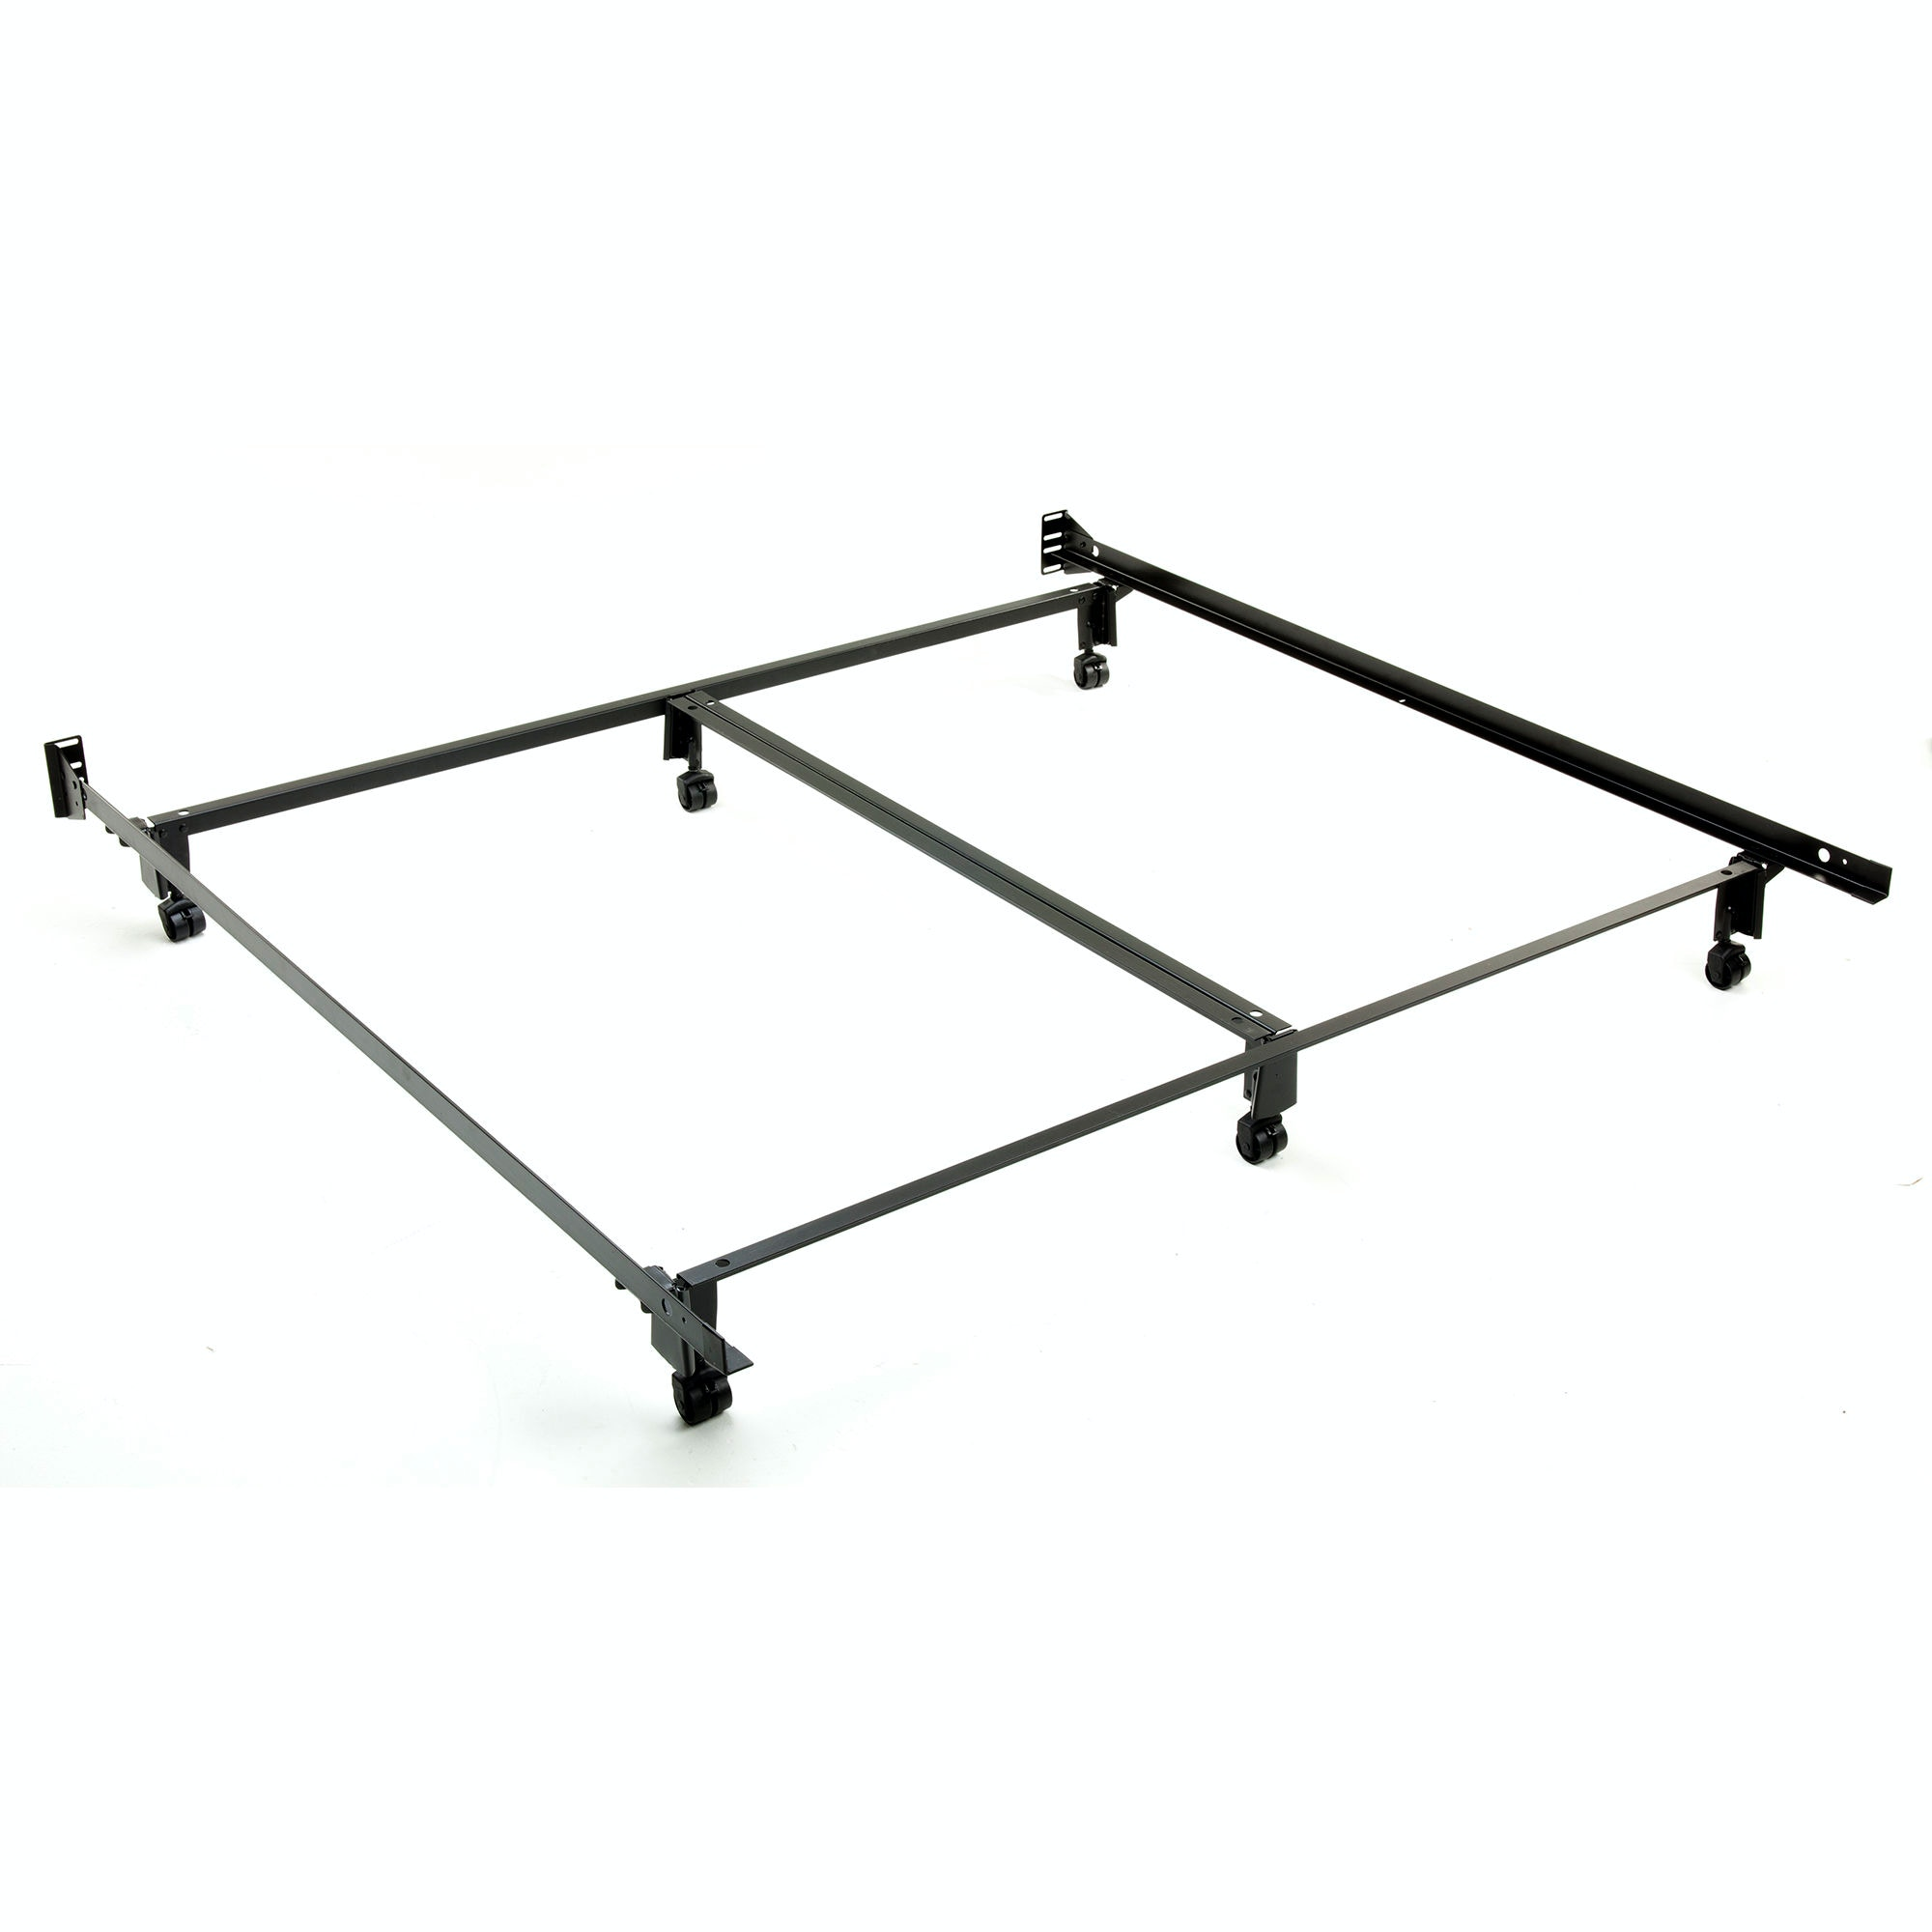 Fashion Bed Group Mattresses Inst A Matic Premium 777r Bed Frame